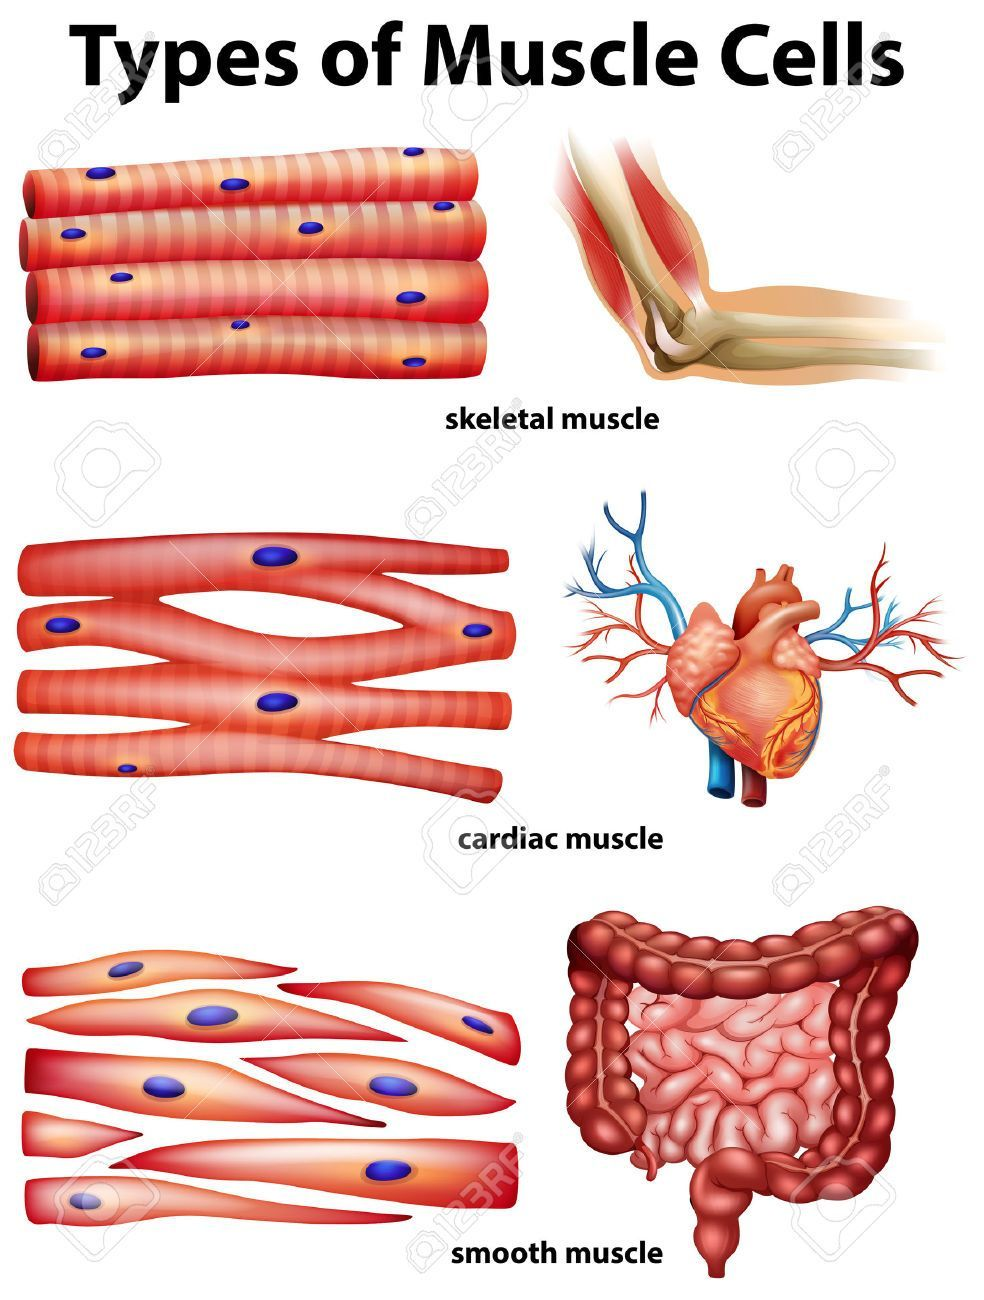 Labeled Cardiac Muscle | Human anatomy and physiology ...